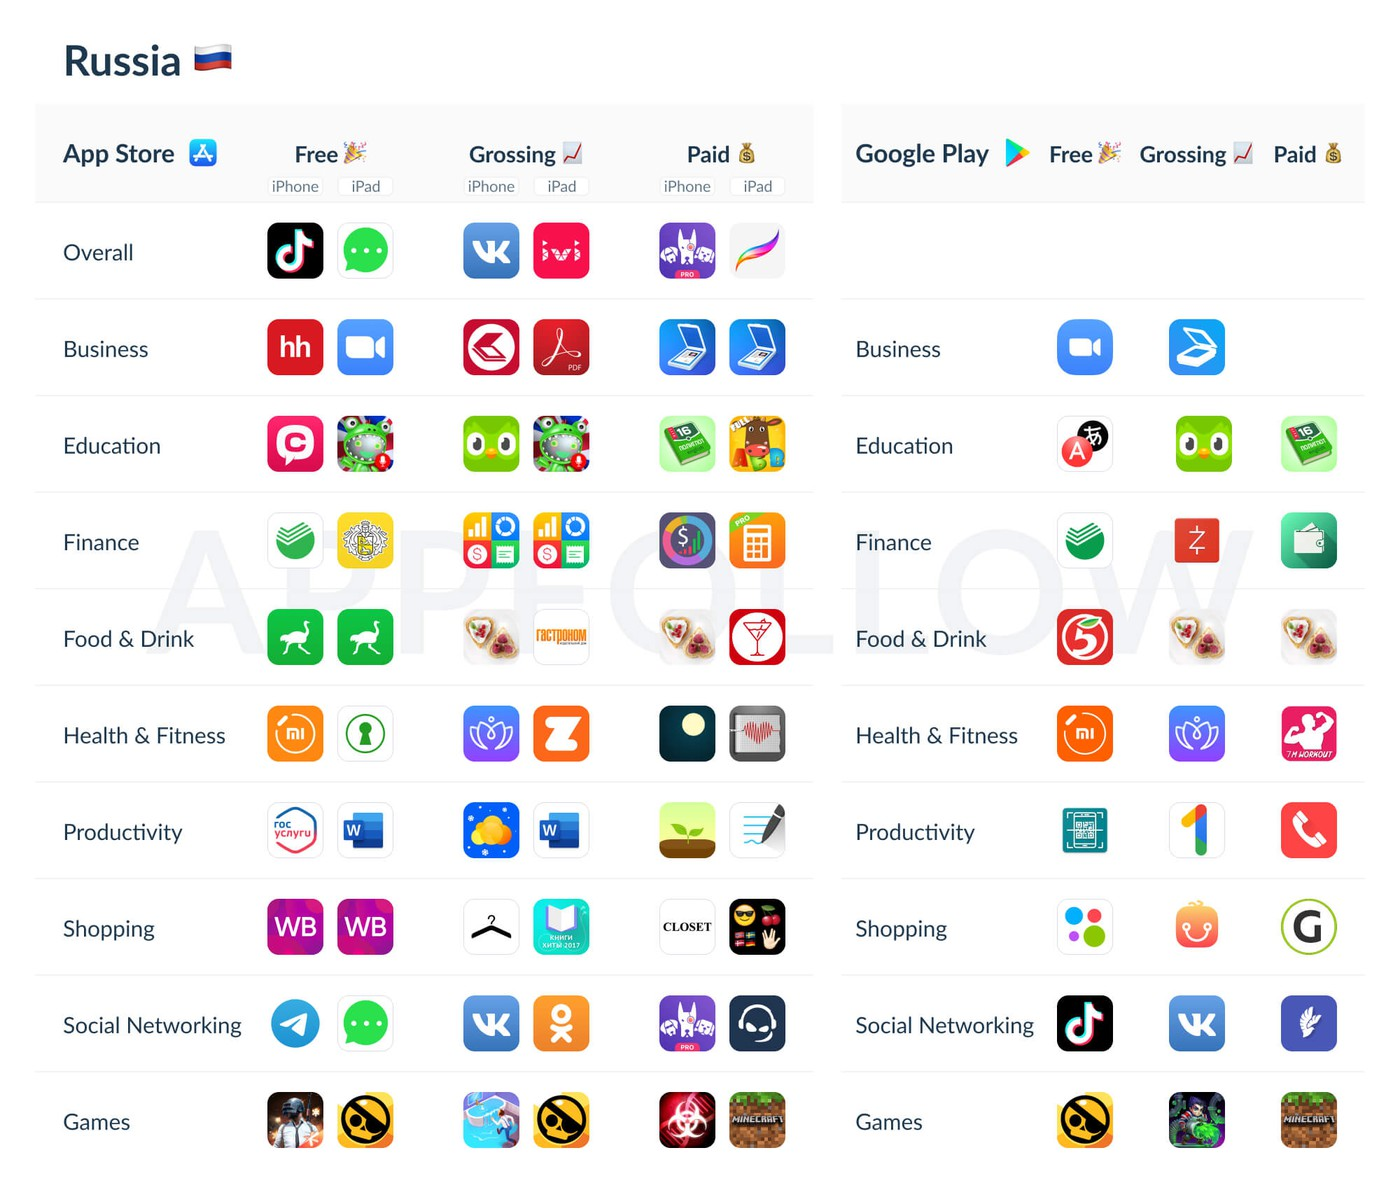 AppFollow identifies top apps in the App Store and Google Play in 2020